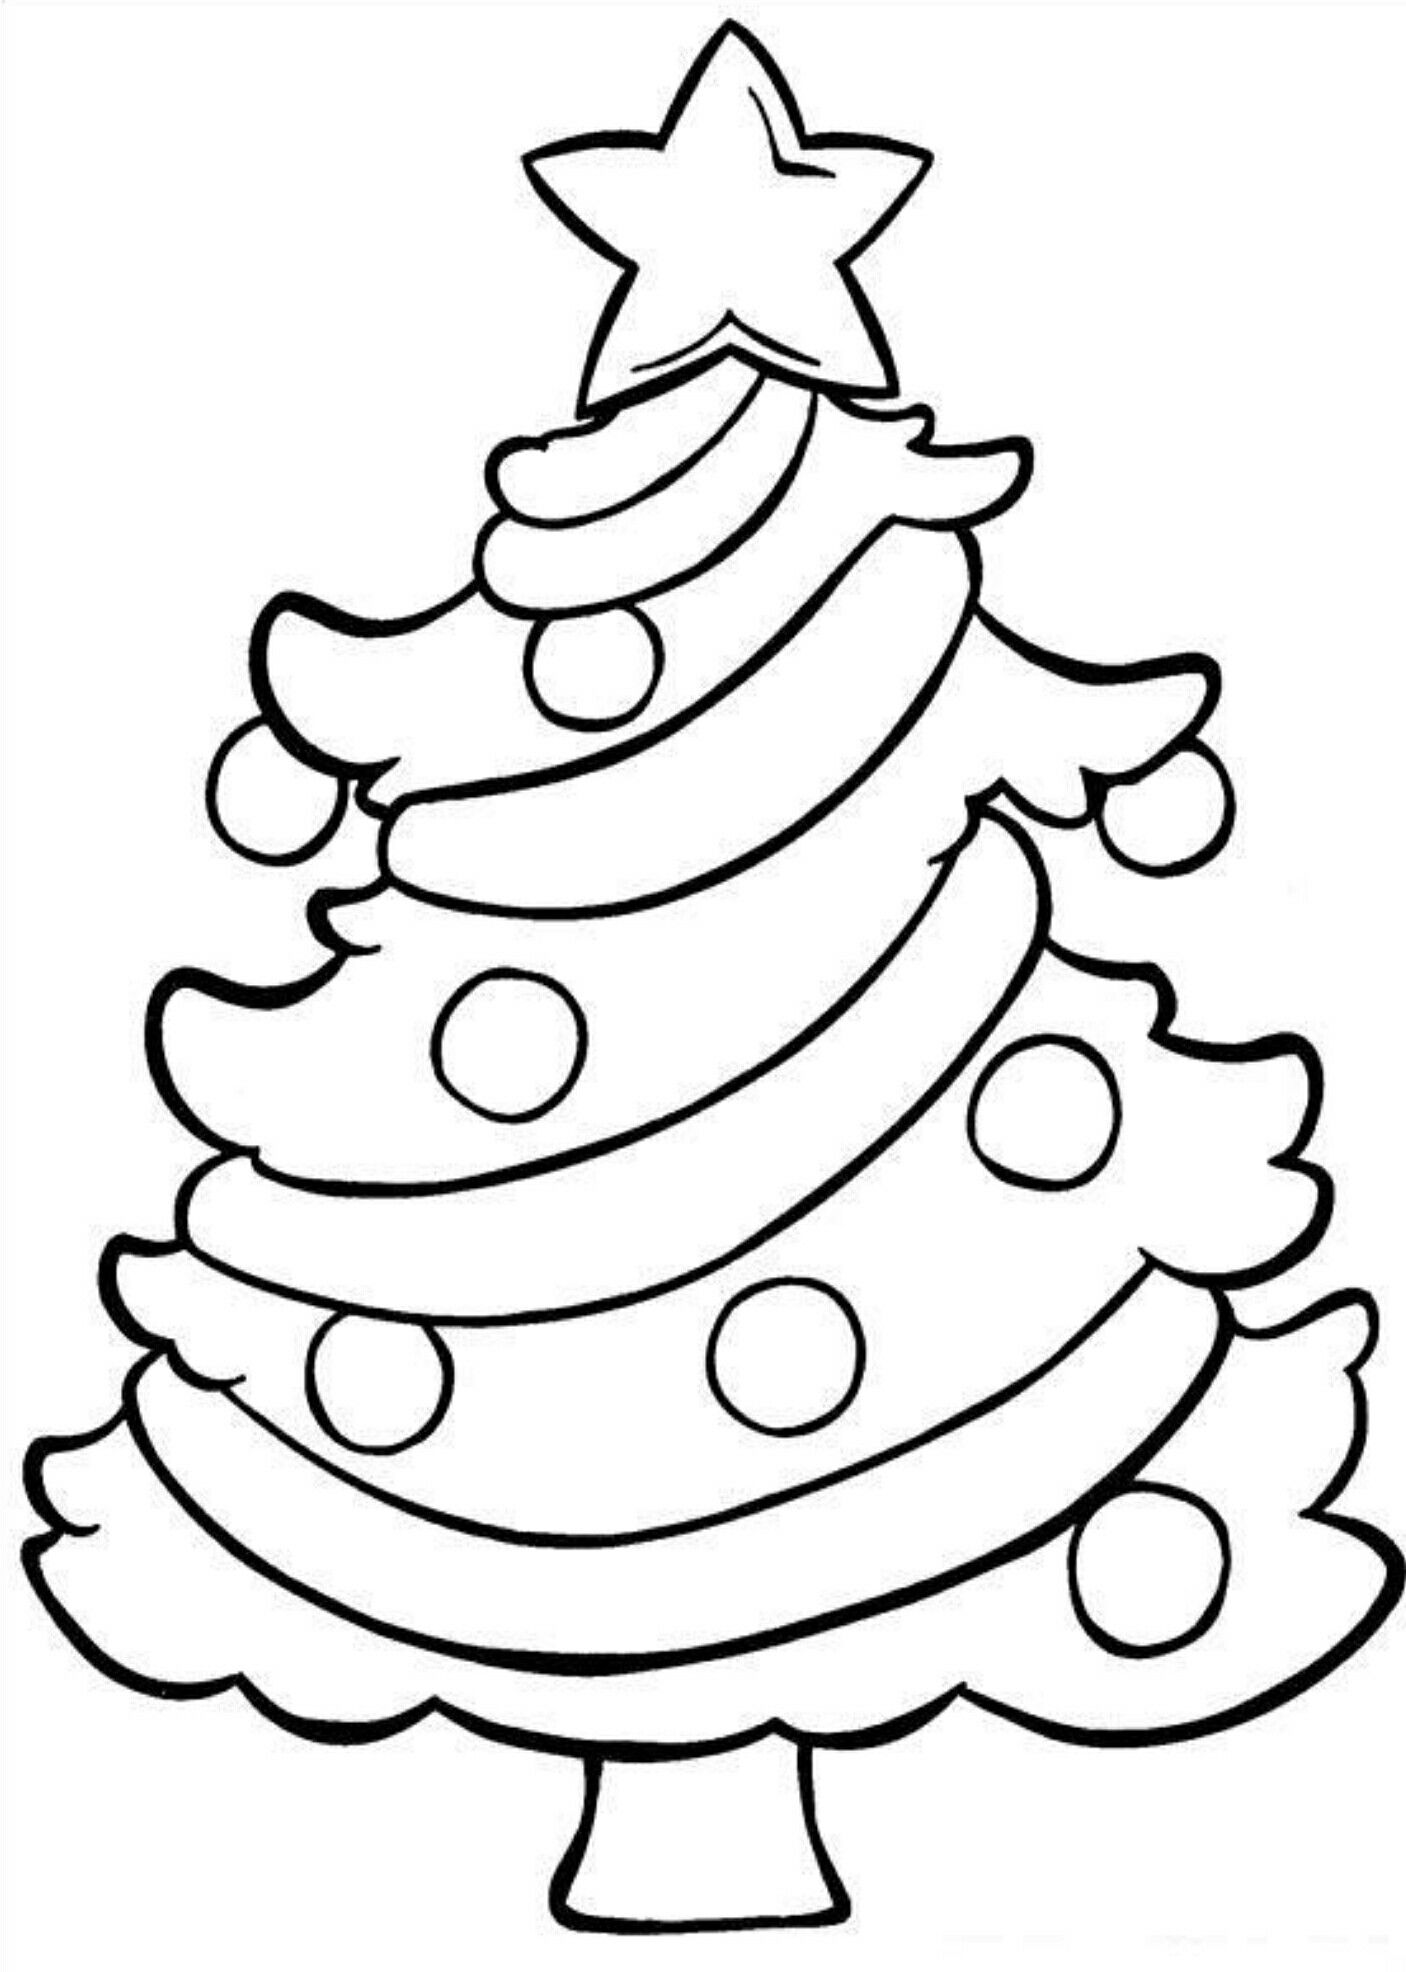 Pin By Merveruya On Pre K Stuff Christmas Tree Coloring Page Free Christmas Coloring Pages Christmas Coloring Sheets